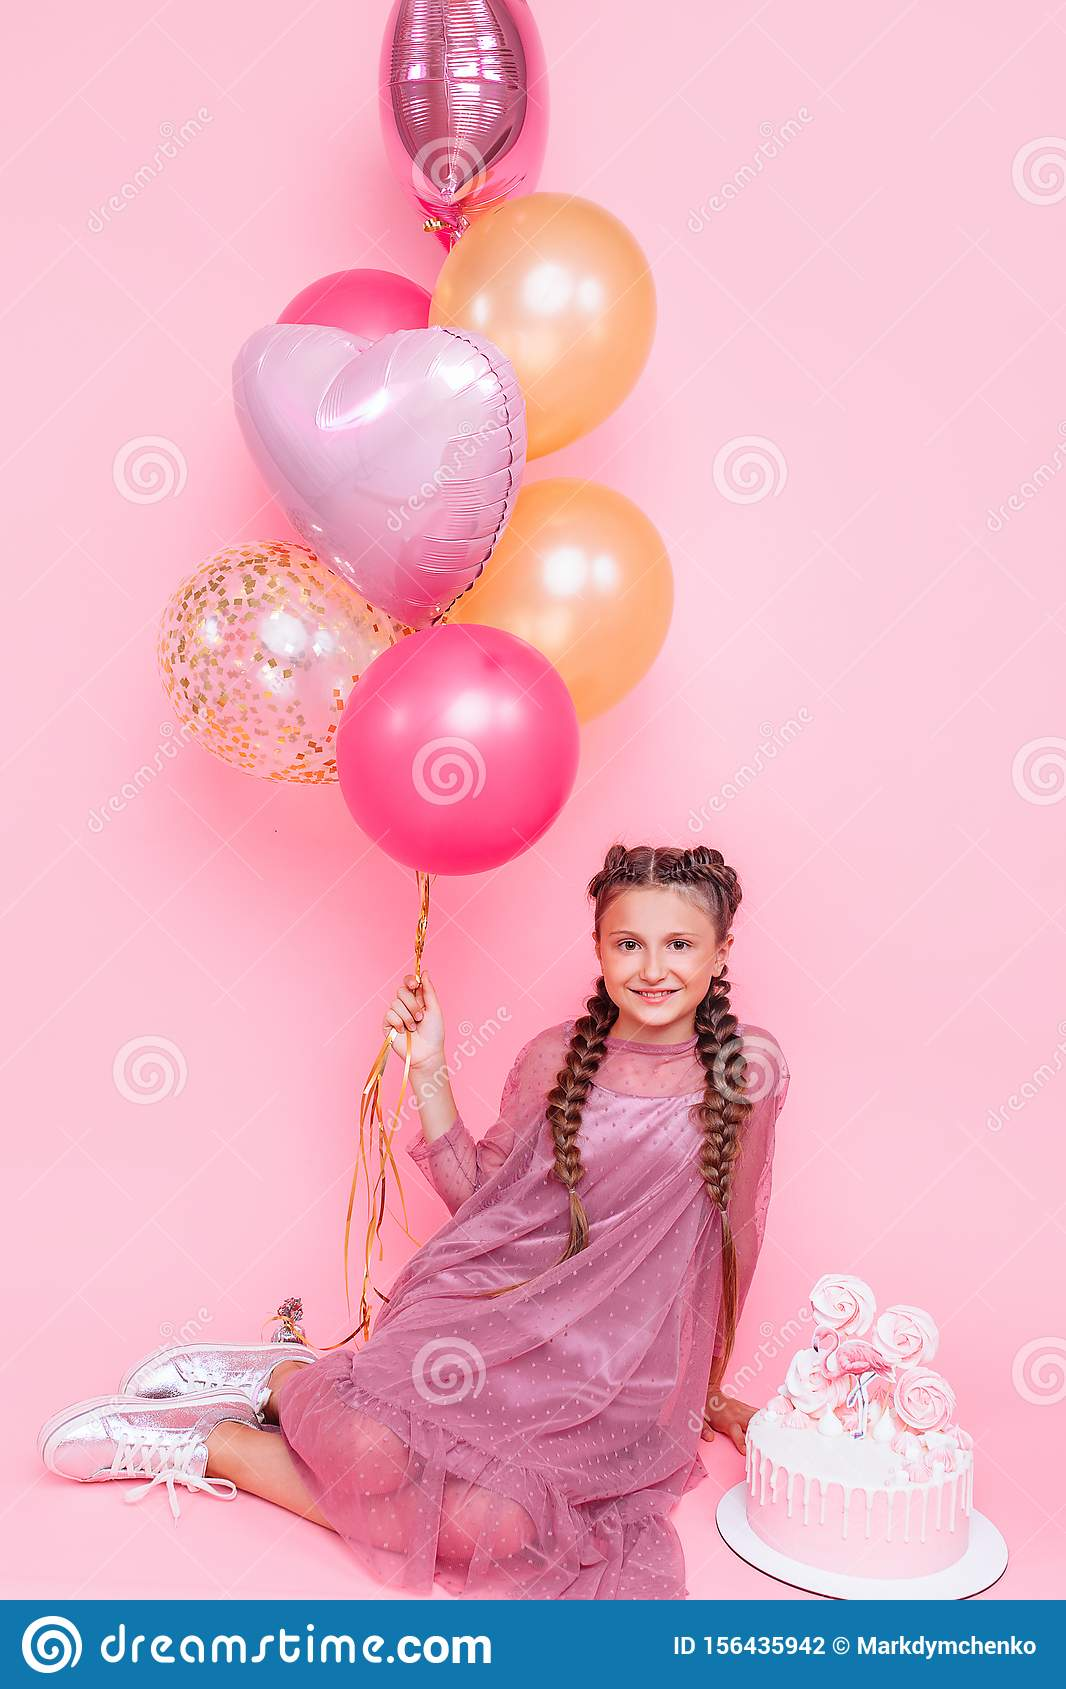 Super Teenage Girl With Balloons And A Birthday Cake Posing On A Pink Funny Birthday Cards Online Aeocydamsfinfo